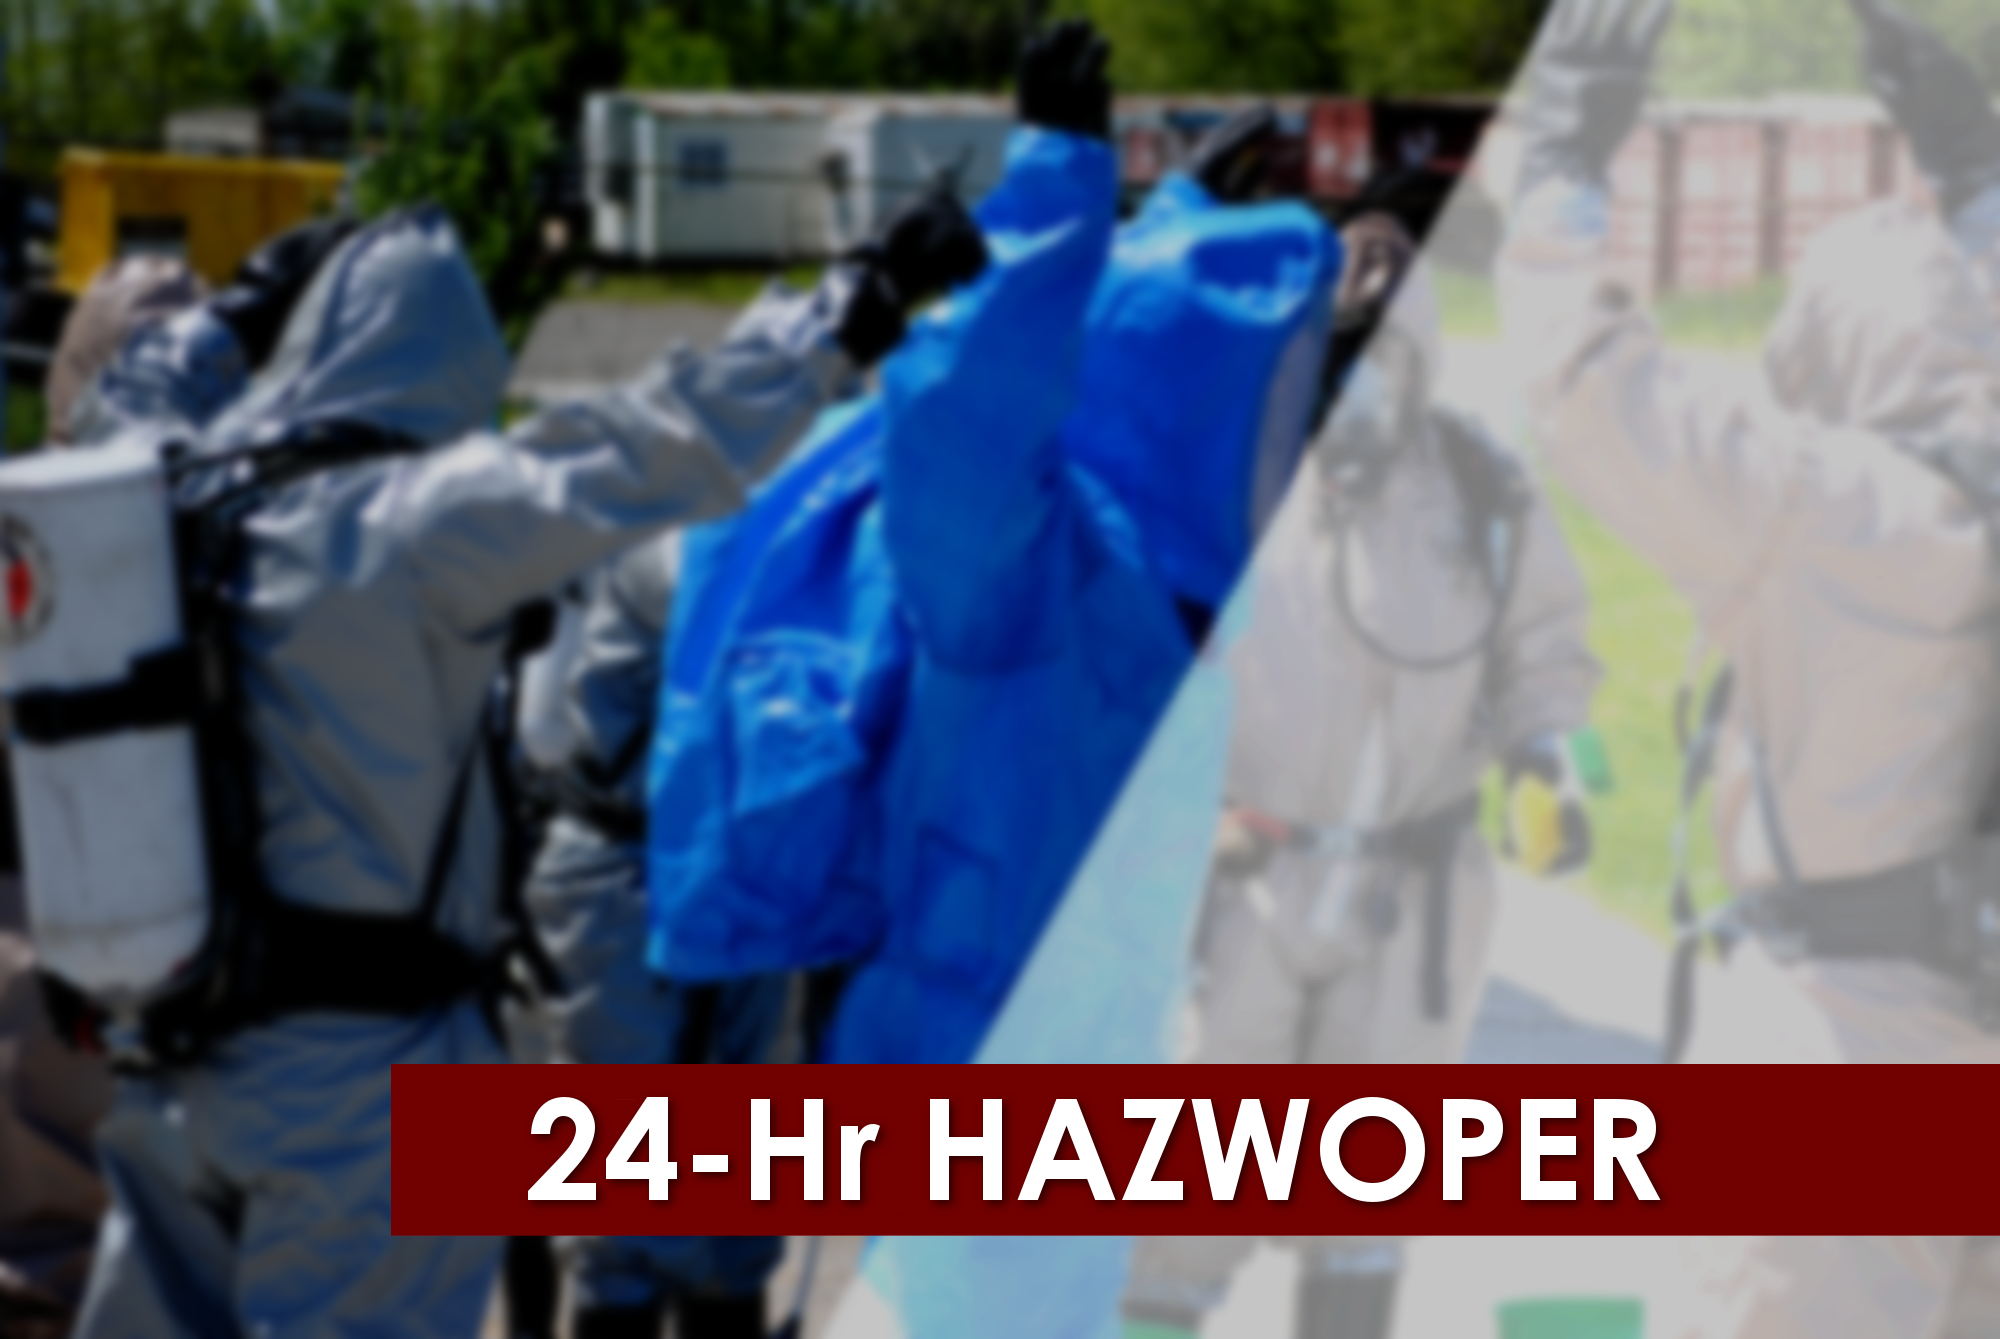 24-hour Hazwoper training